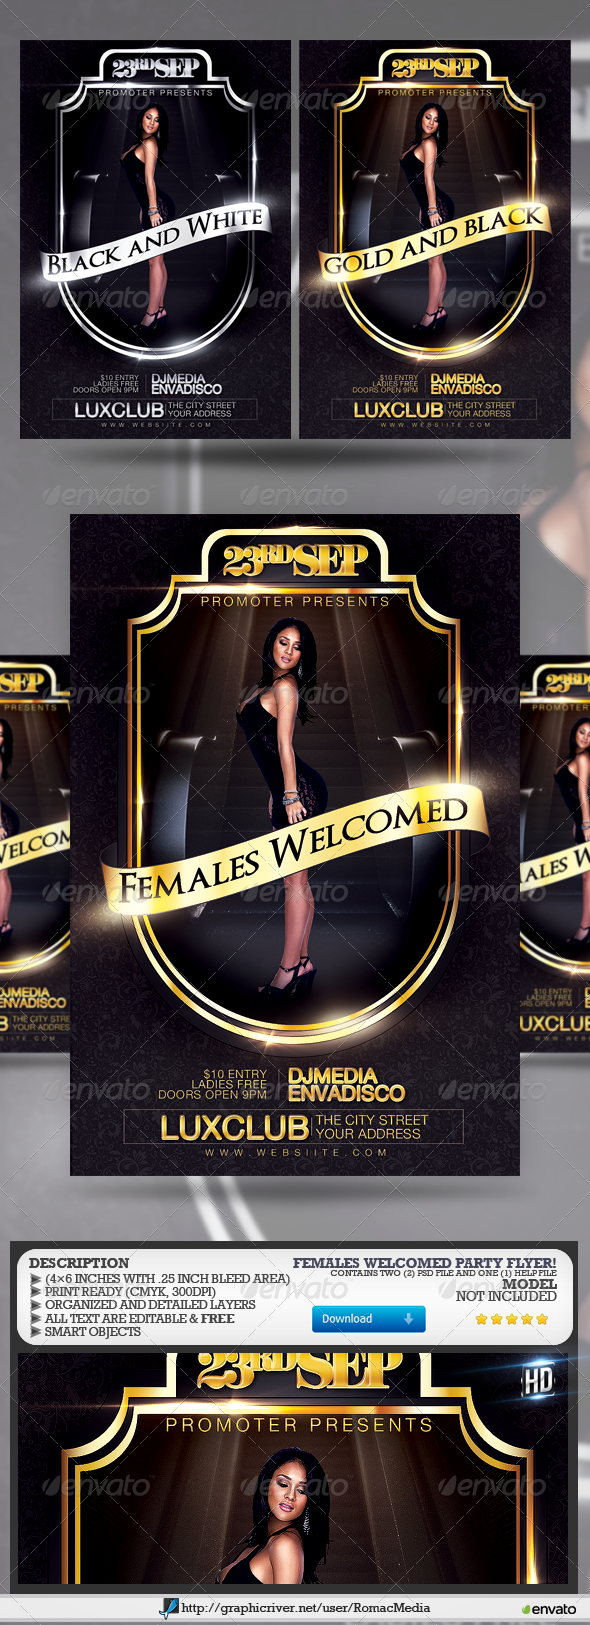 GraphicRiver Females Welcomed Party 7842625